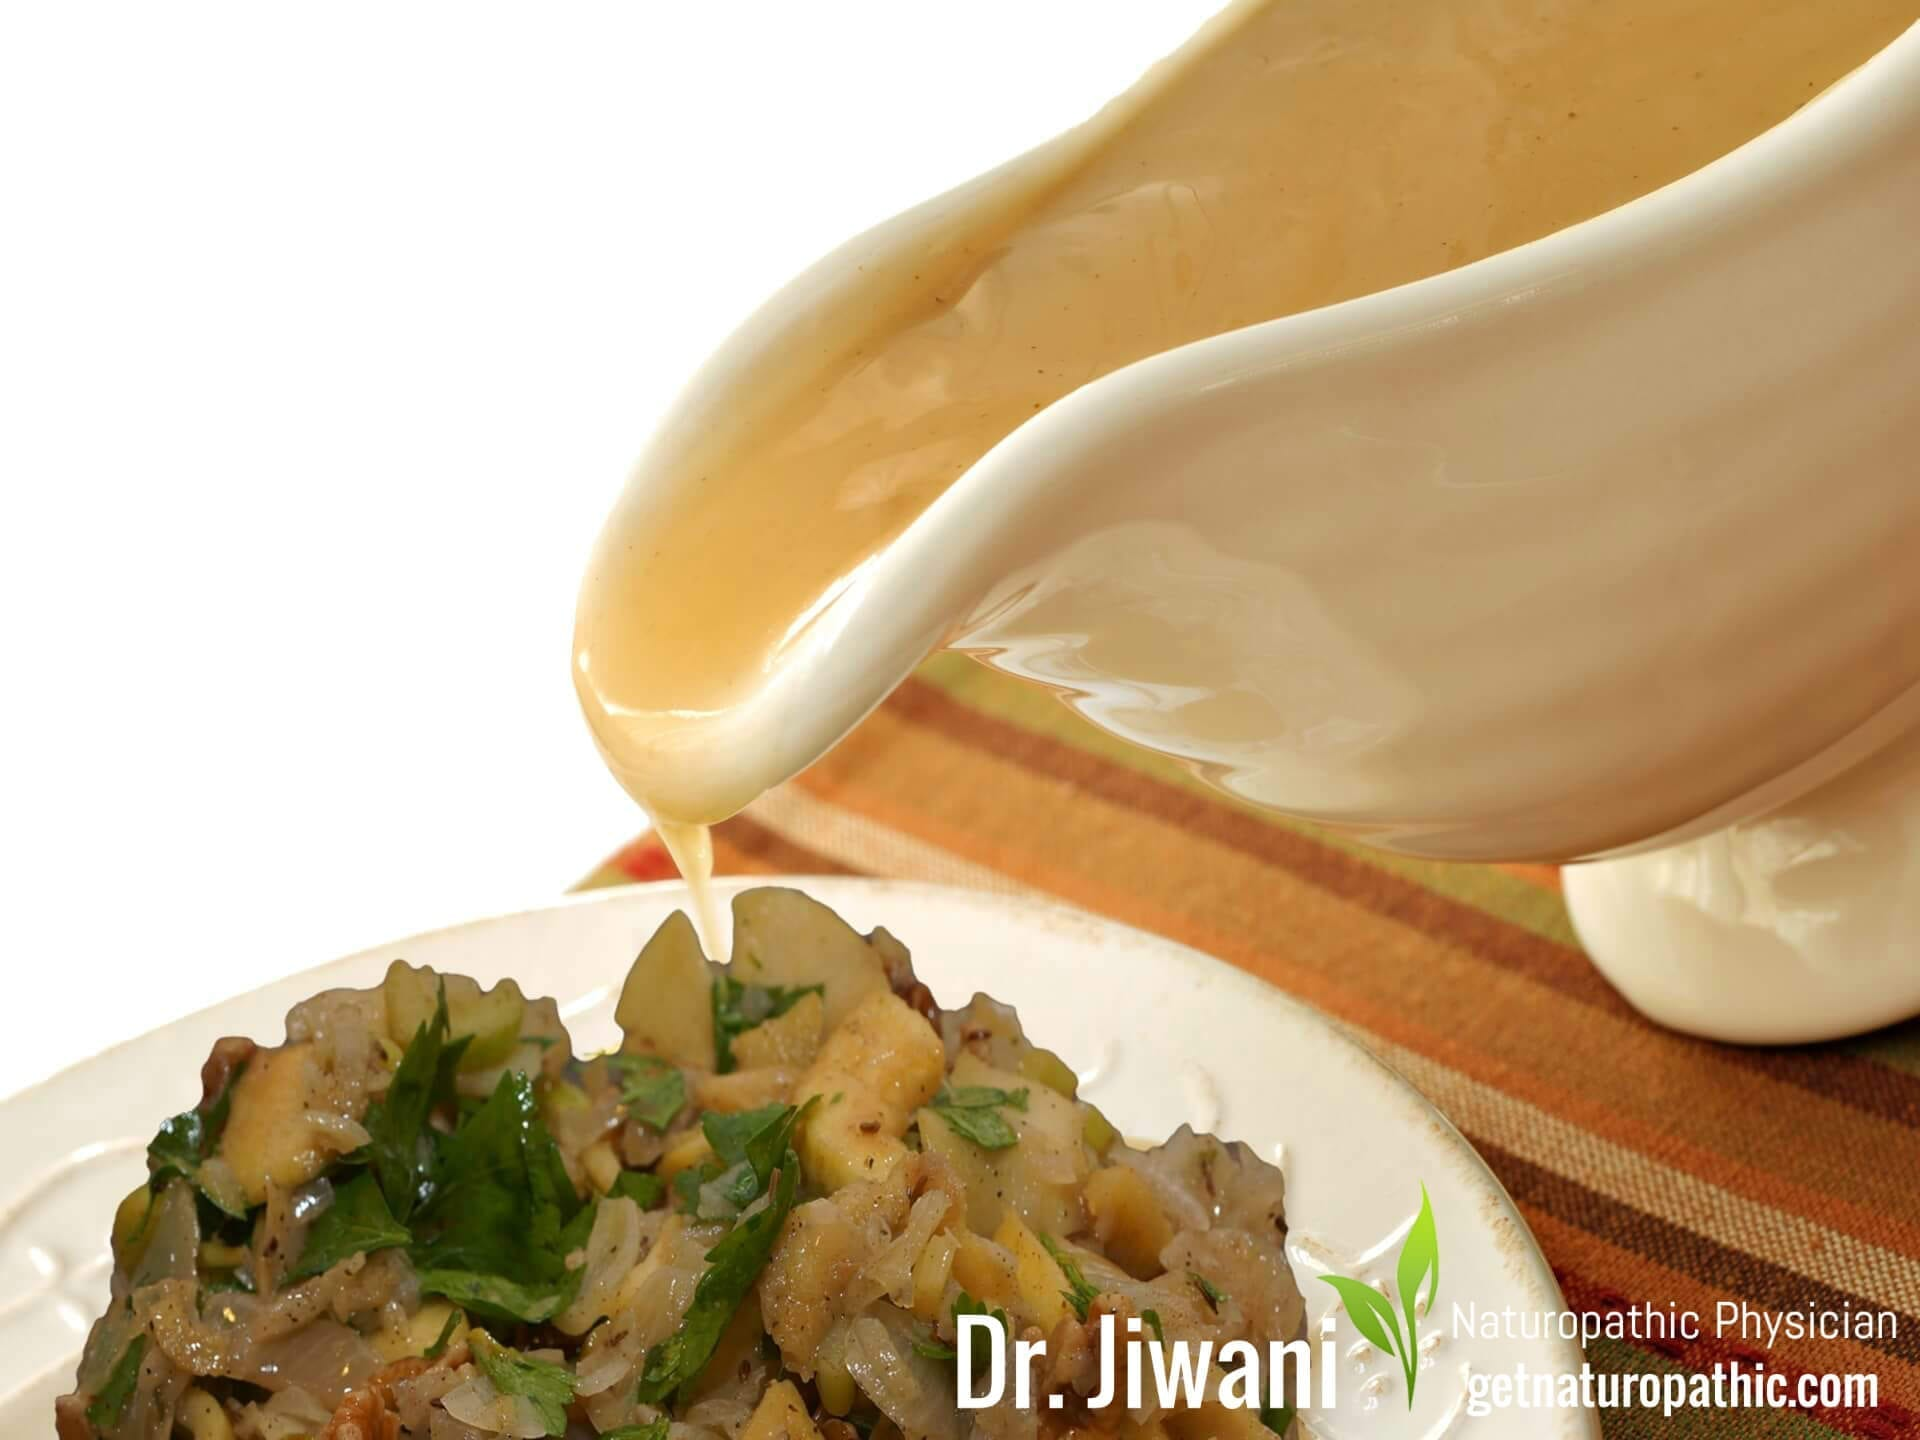 Dr. Jiwani's Healthy Thanksgiving Dinner Menu: Low Carb, Gluten-Free, Egg-Free, Dairy-Free, Soy-Free, Corn-Free, Ideal For Vegan, Paleo, Keto, Diabetic & Candida Diets | Dr. Jiwani's Naturopathic Nuggets Blog